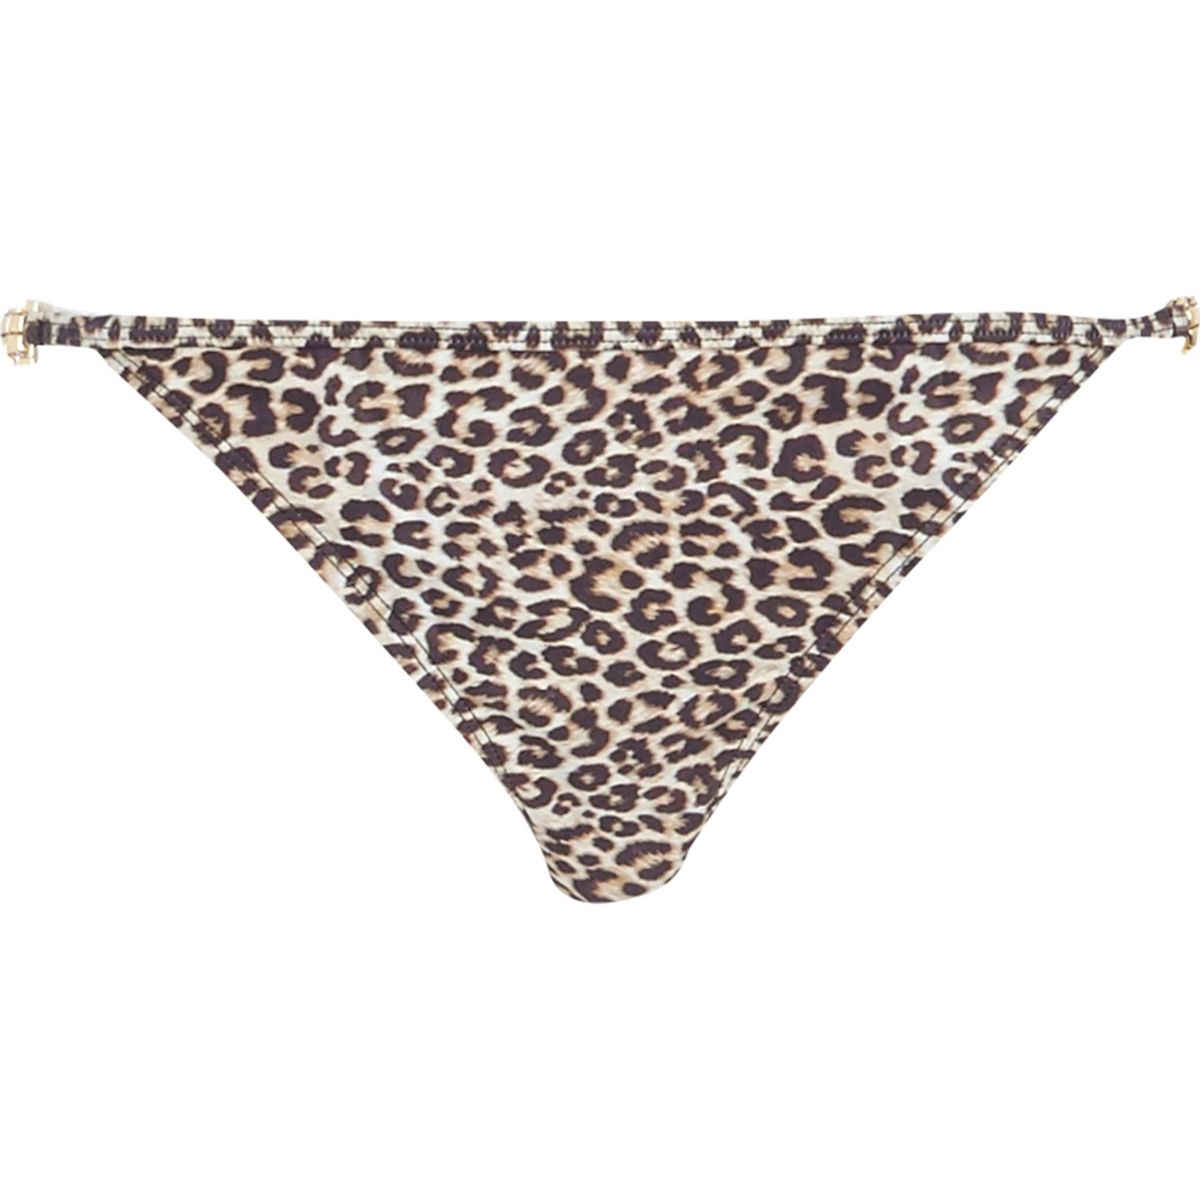 Brown leopard print jewel bikini bottoms